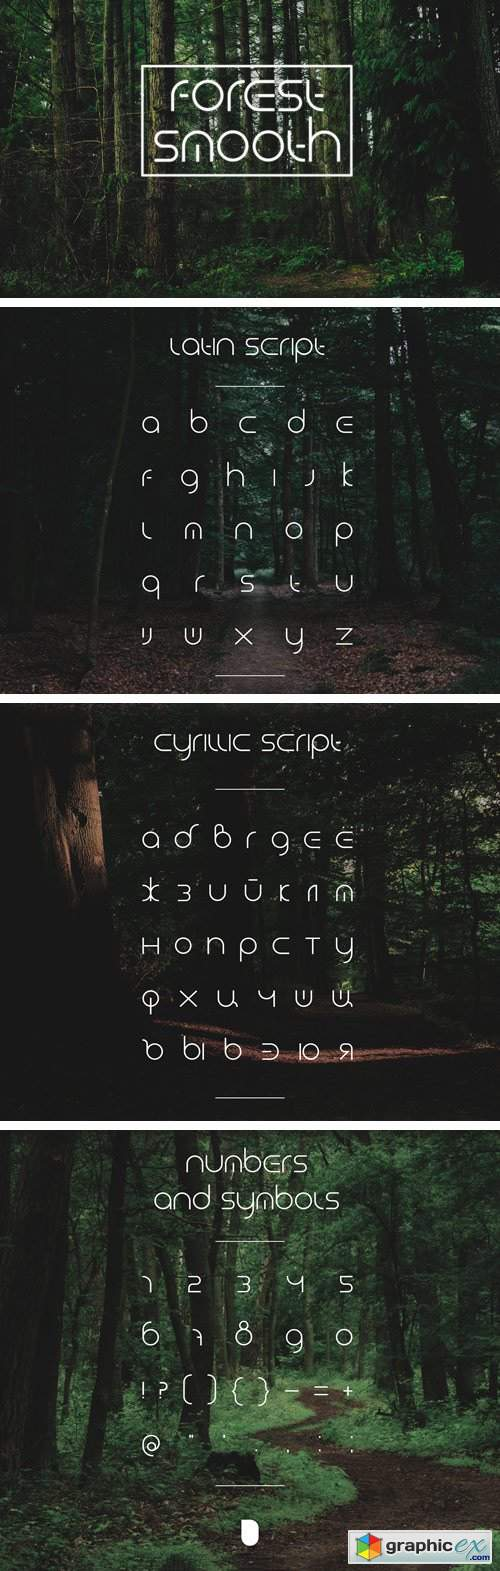 ForestSmooth Typeface